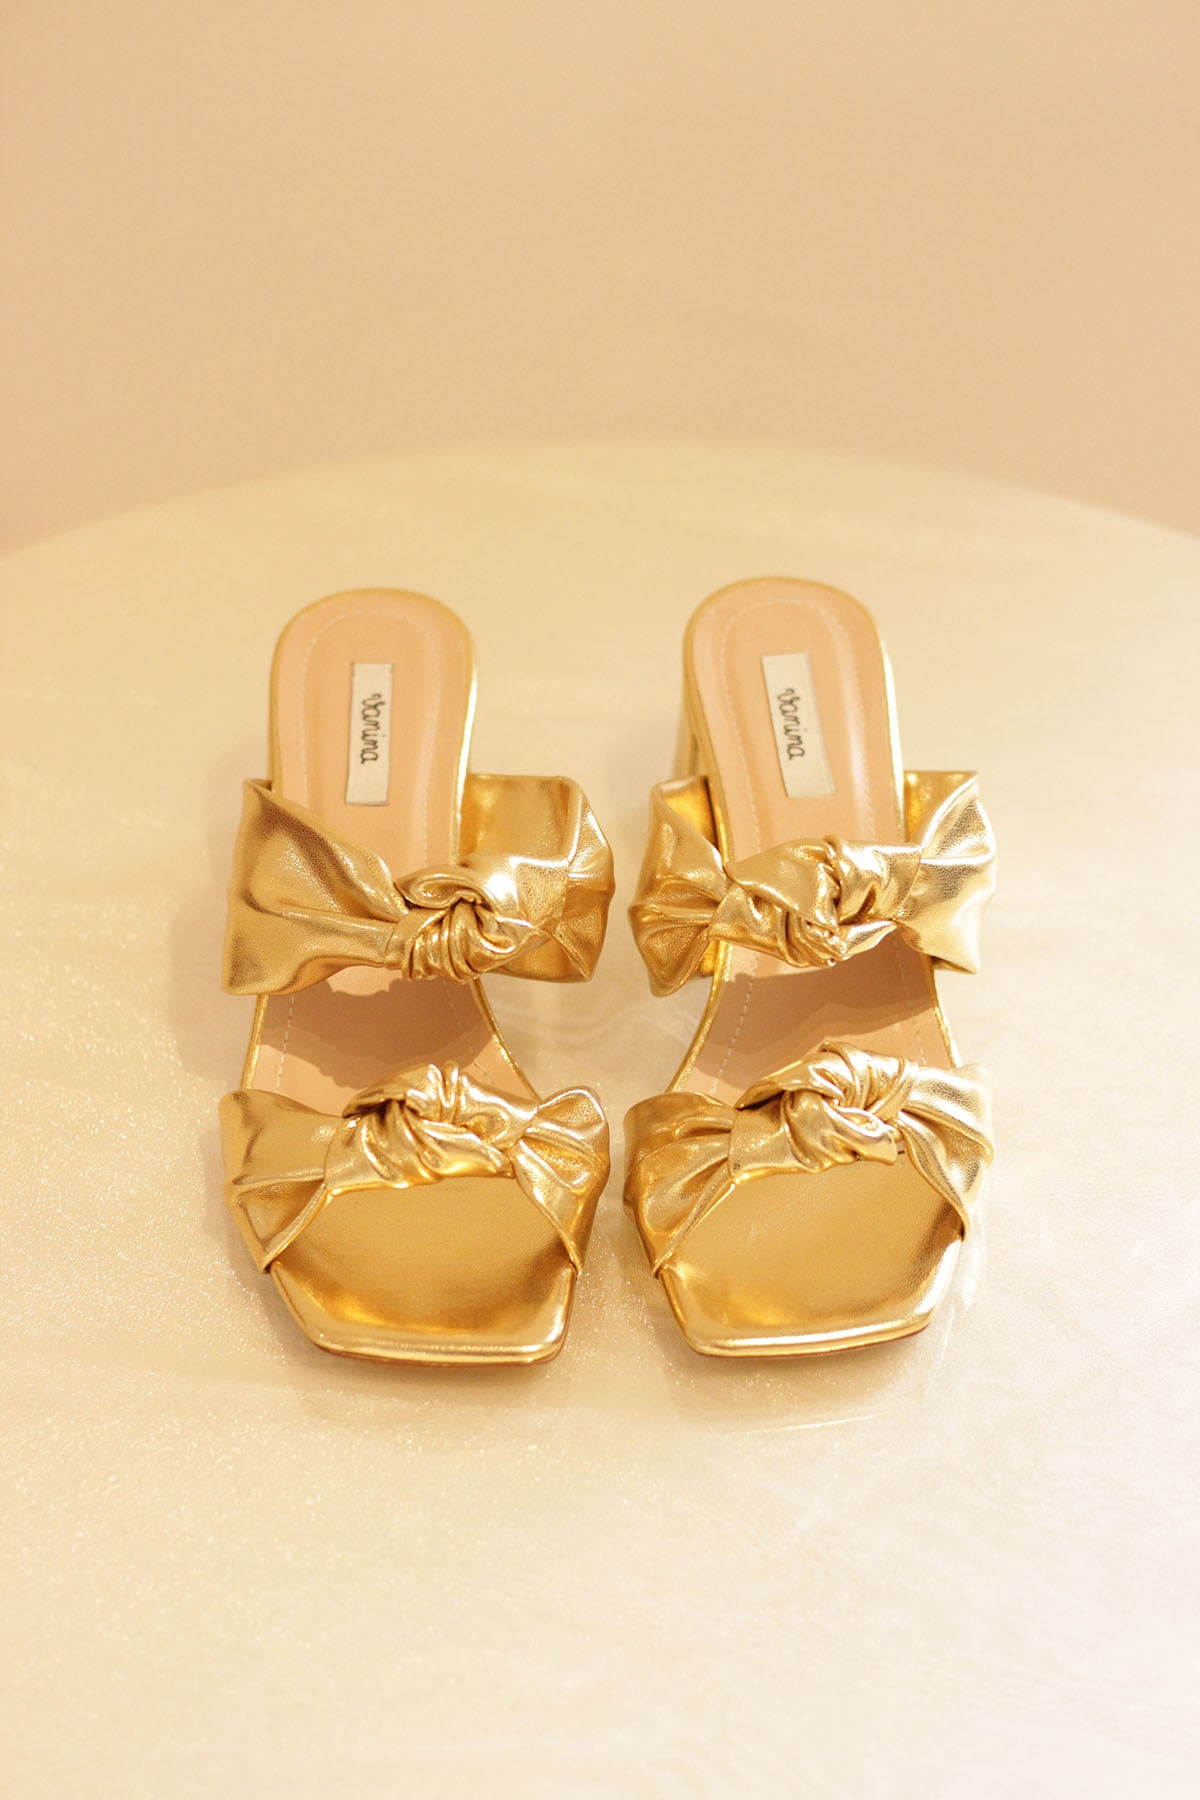 THE GOLD SUNSET SANDALS